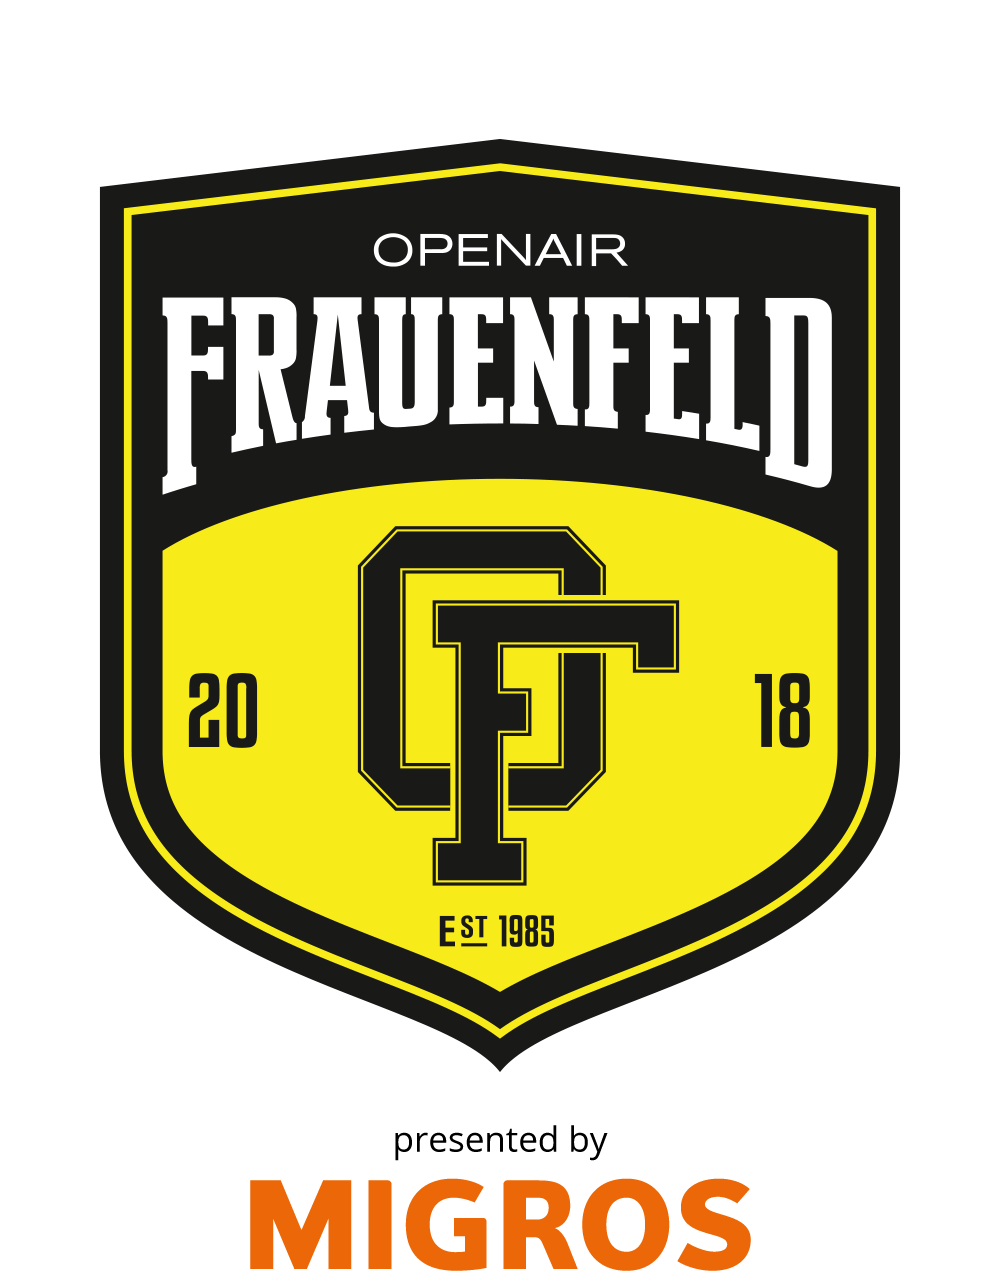 singles umgebung dates festival frauenfeld crailsheim  travelling from Zurich Airport to Frauenfeld - English Forum OPENAIR FRAUENFELD 2018 - Openair Frauenfeld 2017, Festival Frauenfeld - Dates festival frauenfeld: Single neunkirchen.